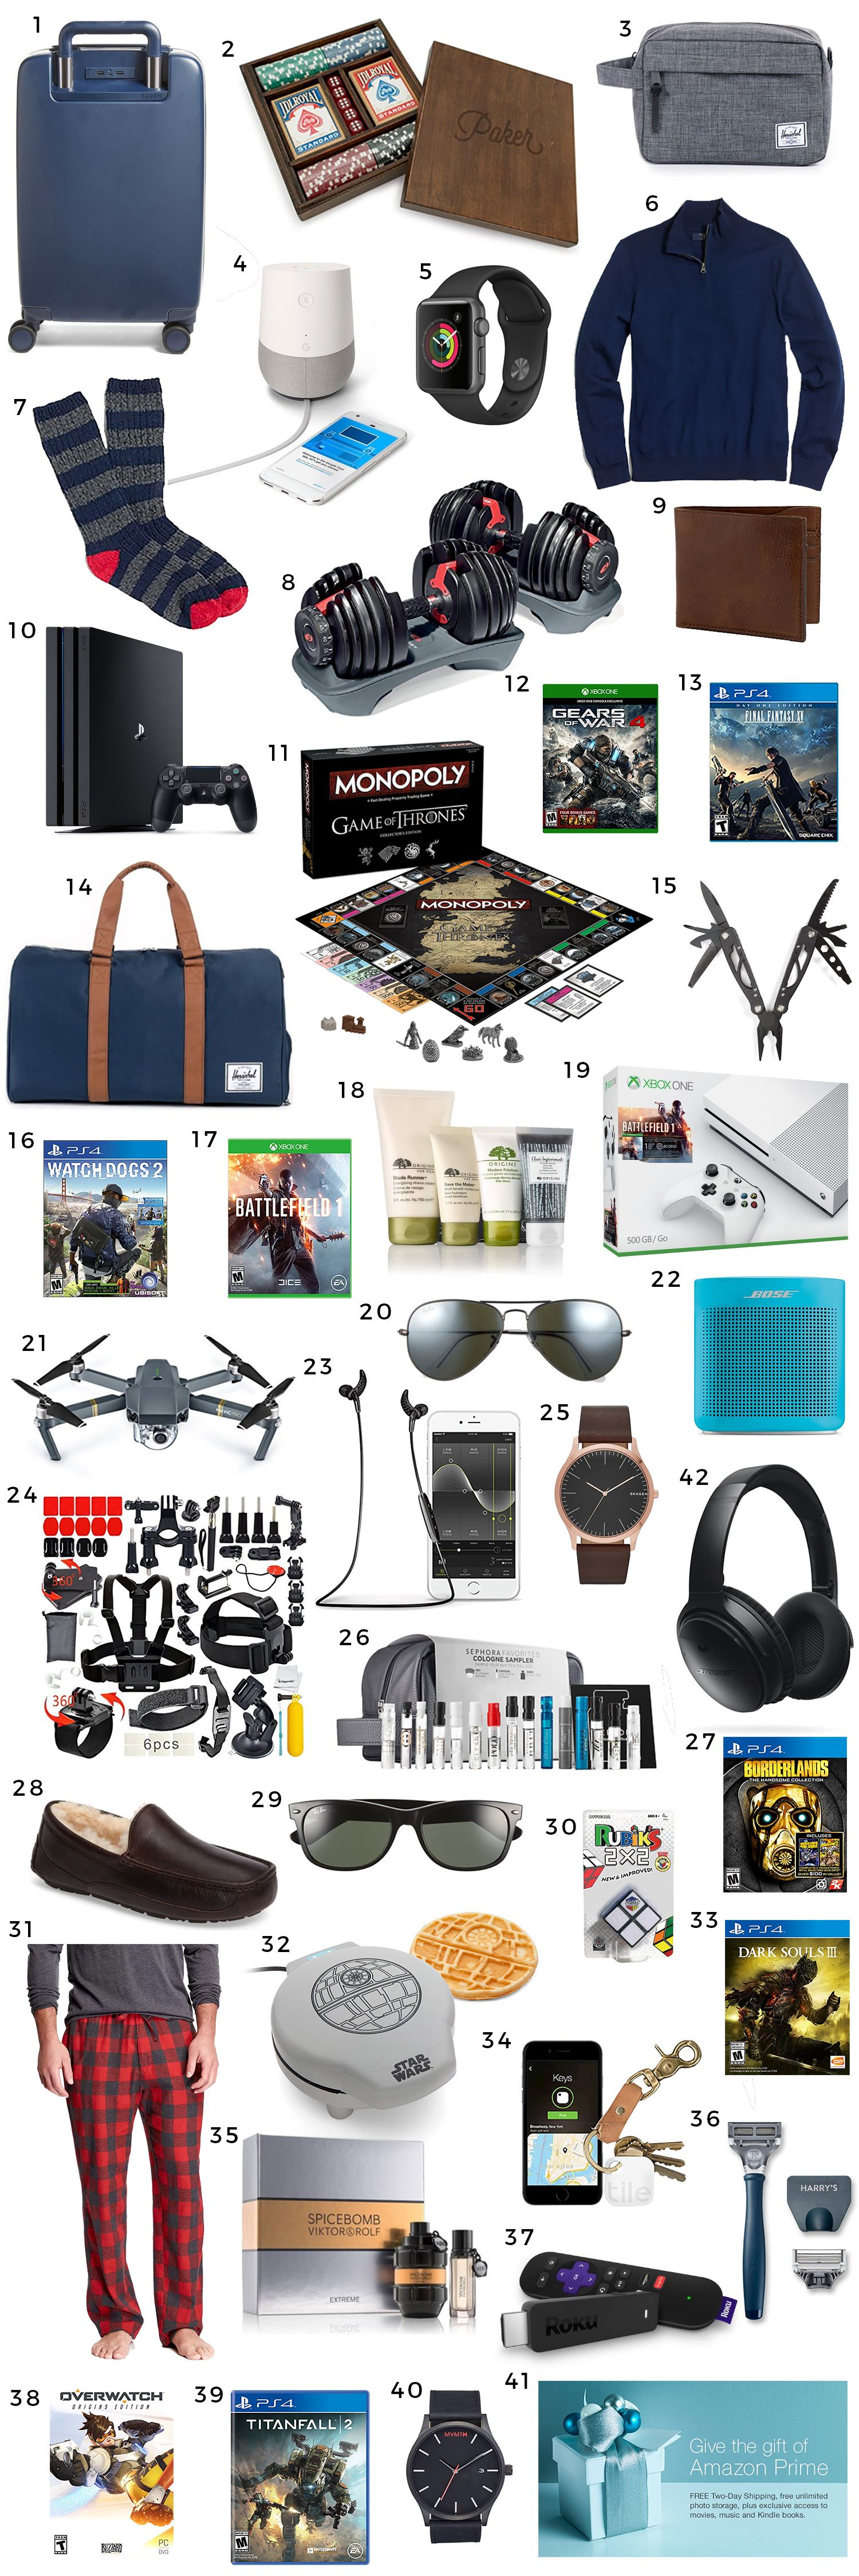 the best christmas gift ideas for men the ultimate christmas gift guide for men filled with tons of unique christmas gift ideas by orlando - Best Christmas Gifts For Men